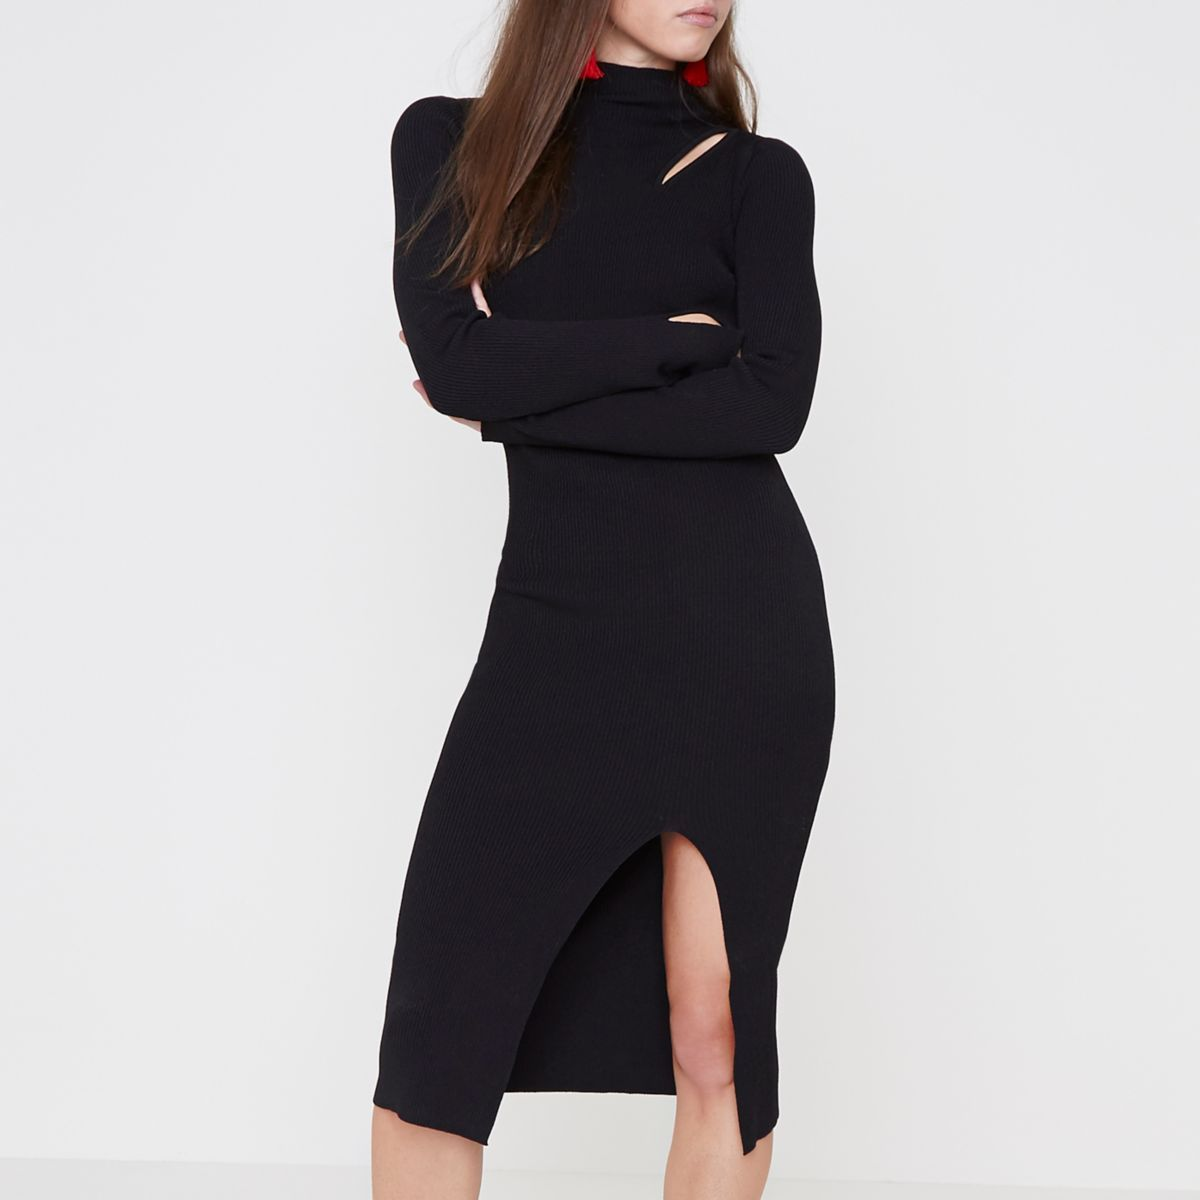 Petite black knit turtle neck bodycon dress